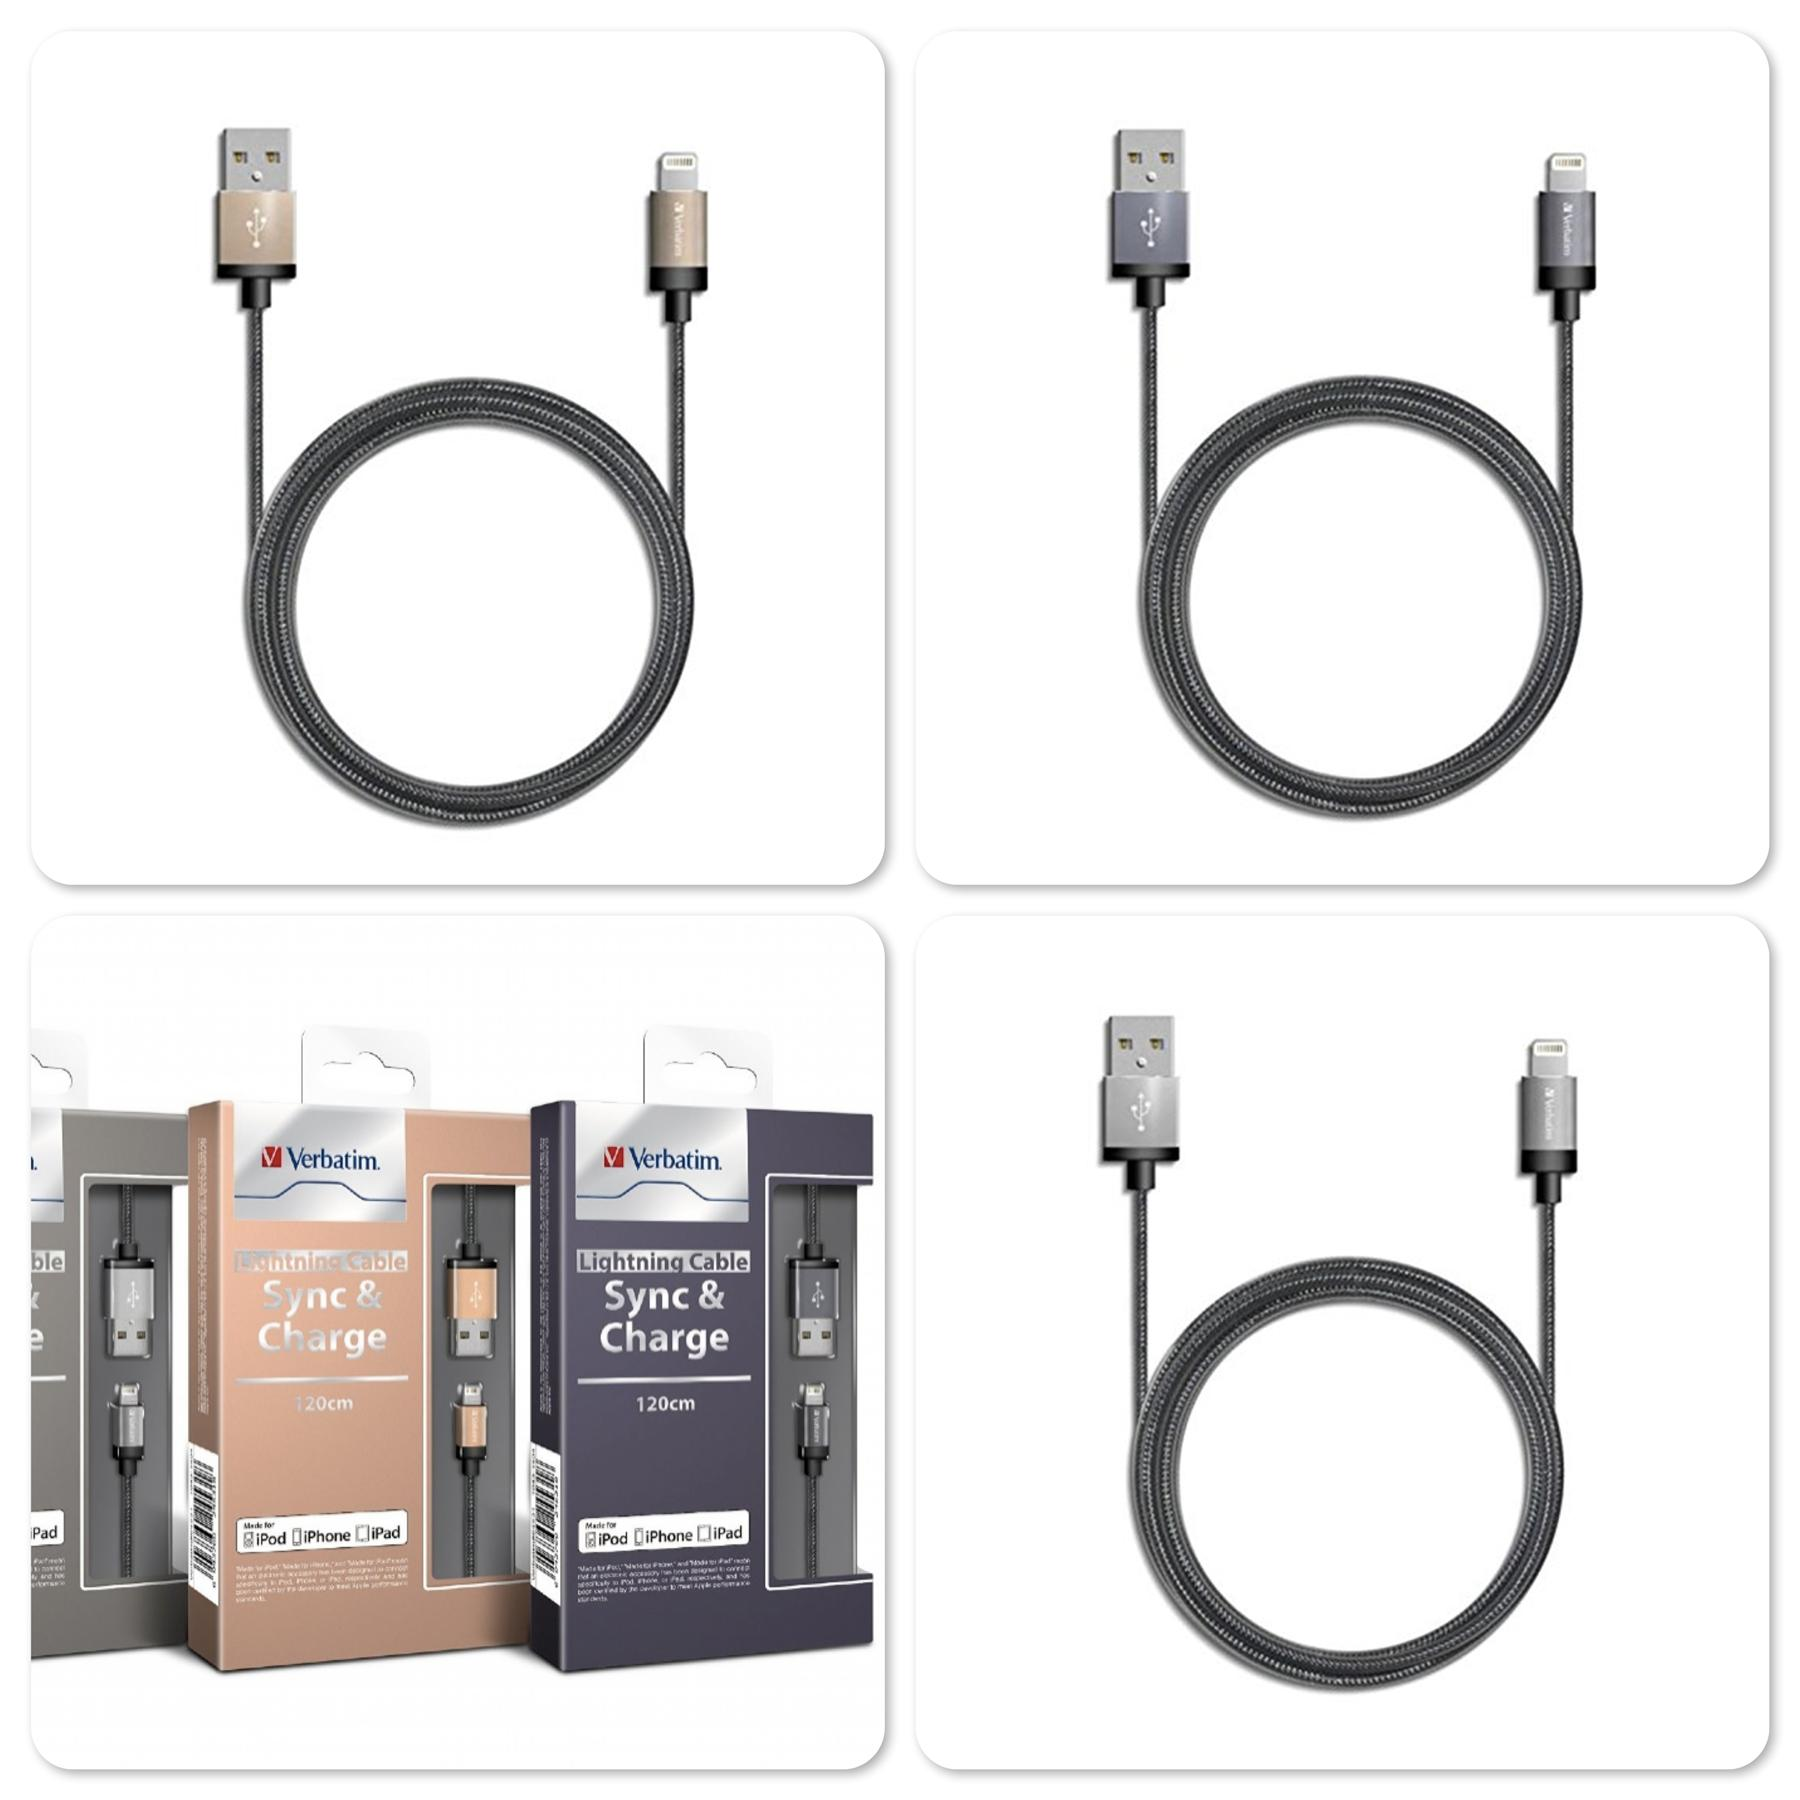 Original Verbatim 120cm Lightning Sync & Charge Cable with MFi